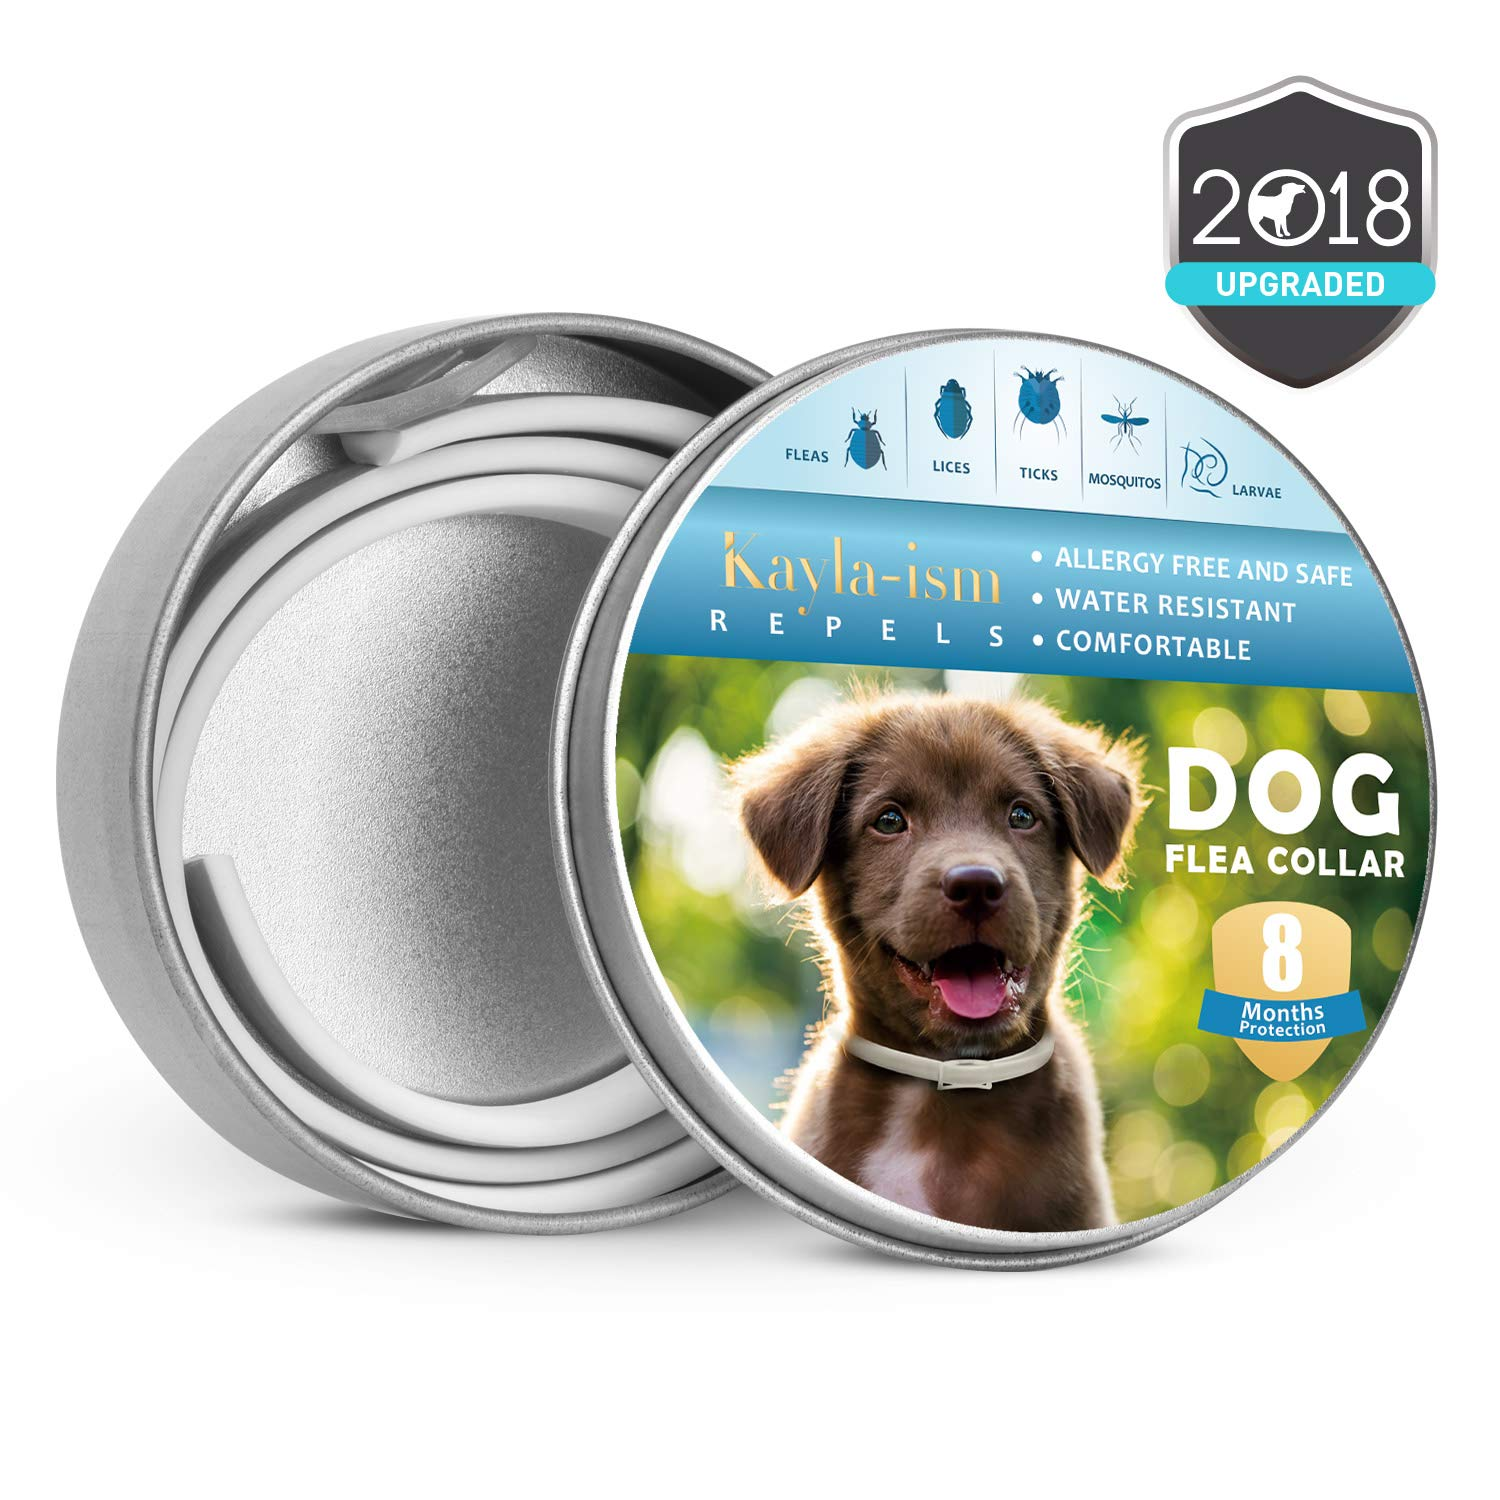 Kayla-ism Dog Flea and Tick Collar, Natural and Essential Oils, Waterproof, One Size Fits All, 8 Months Full Protection, Healthy and Harmless by Kayla-ism (Image #1)